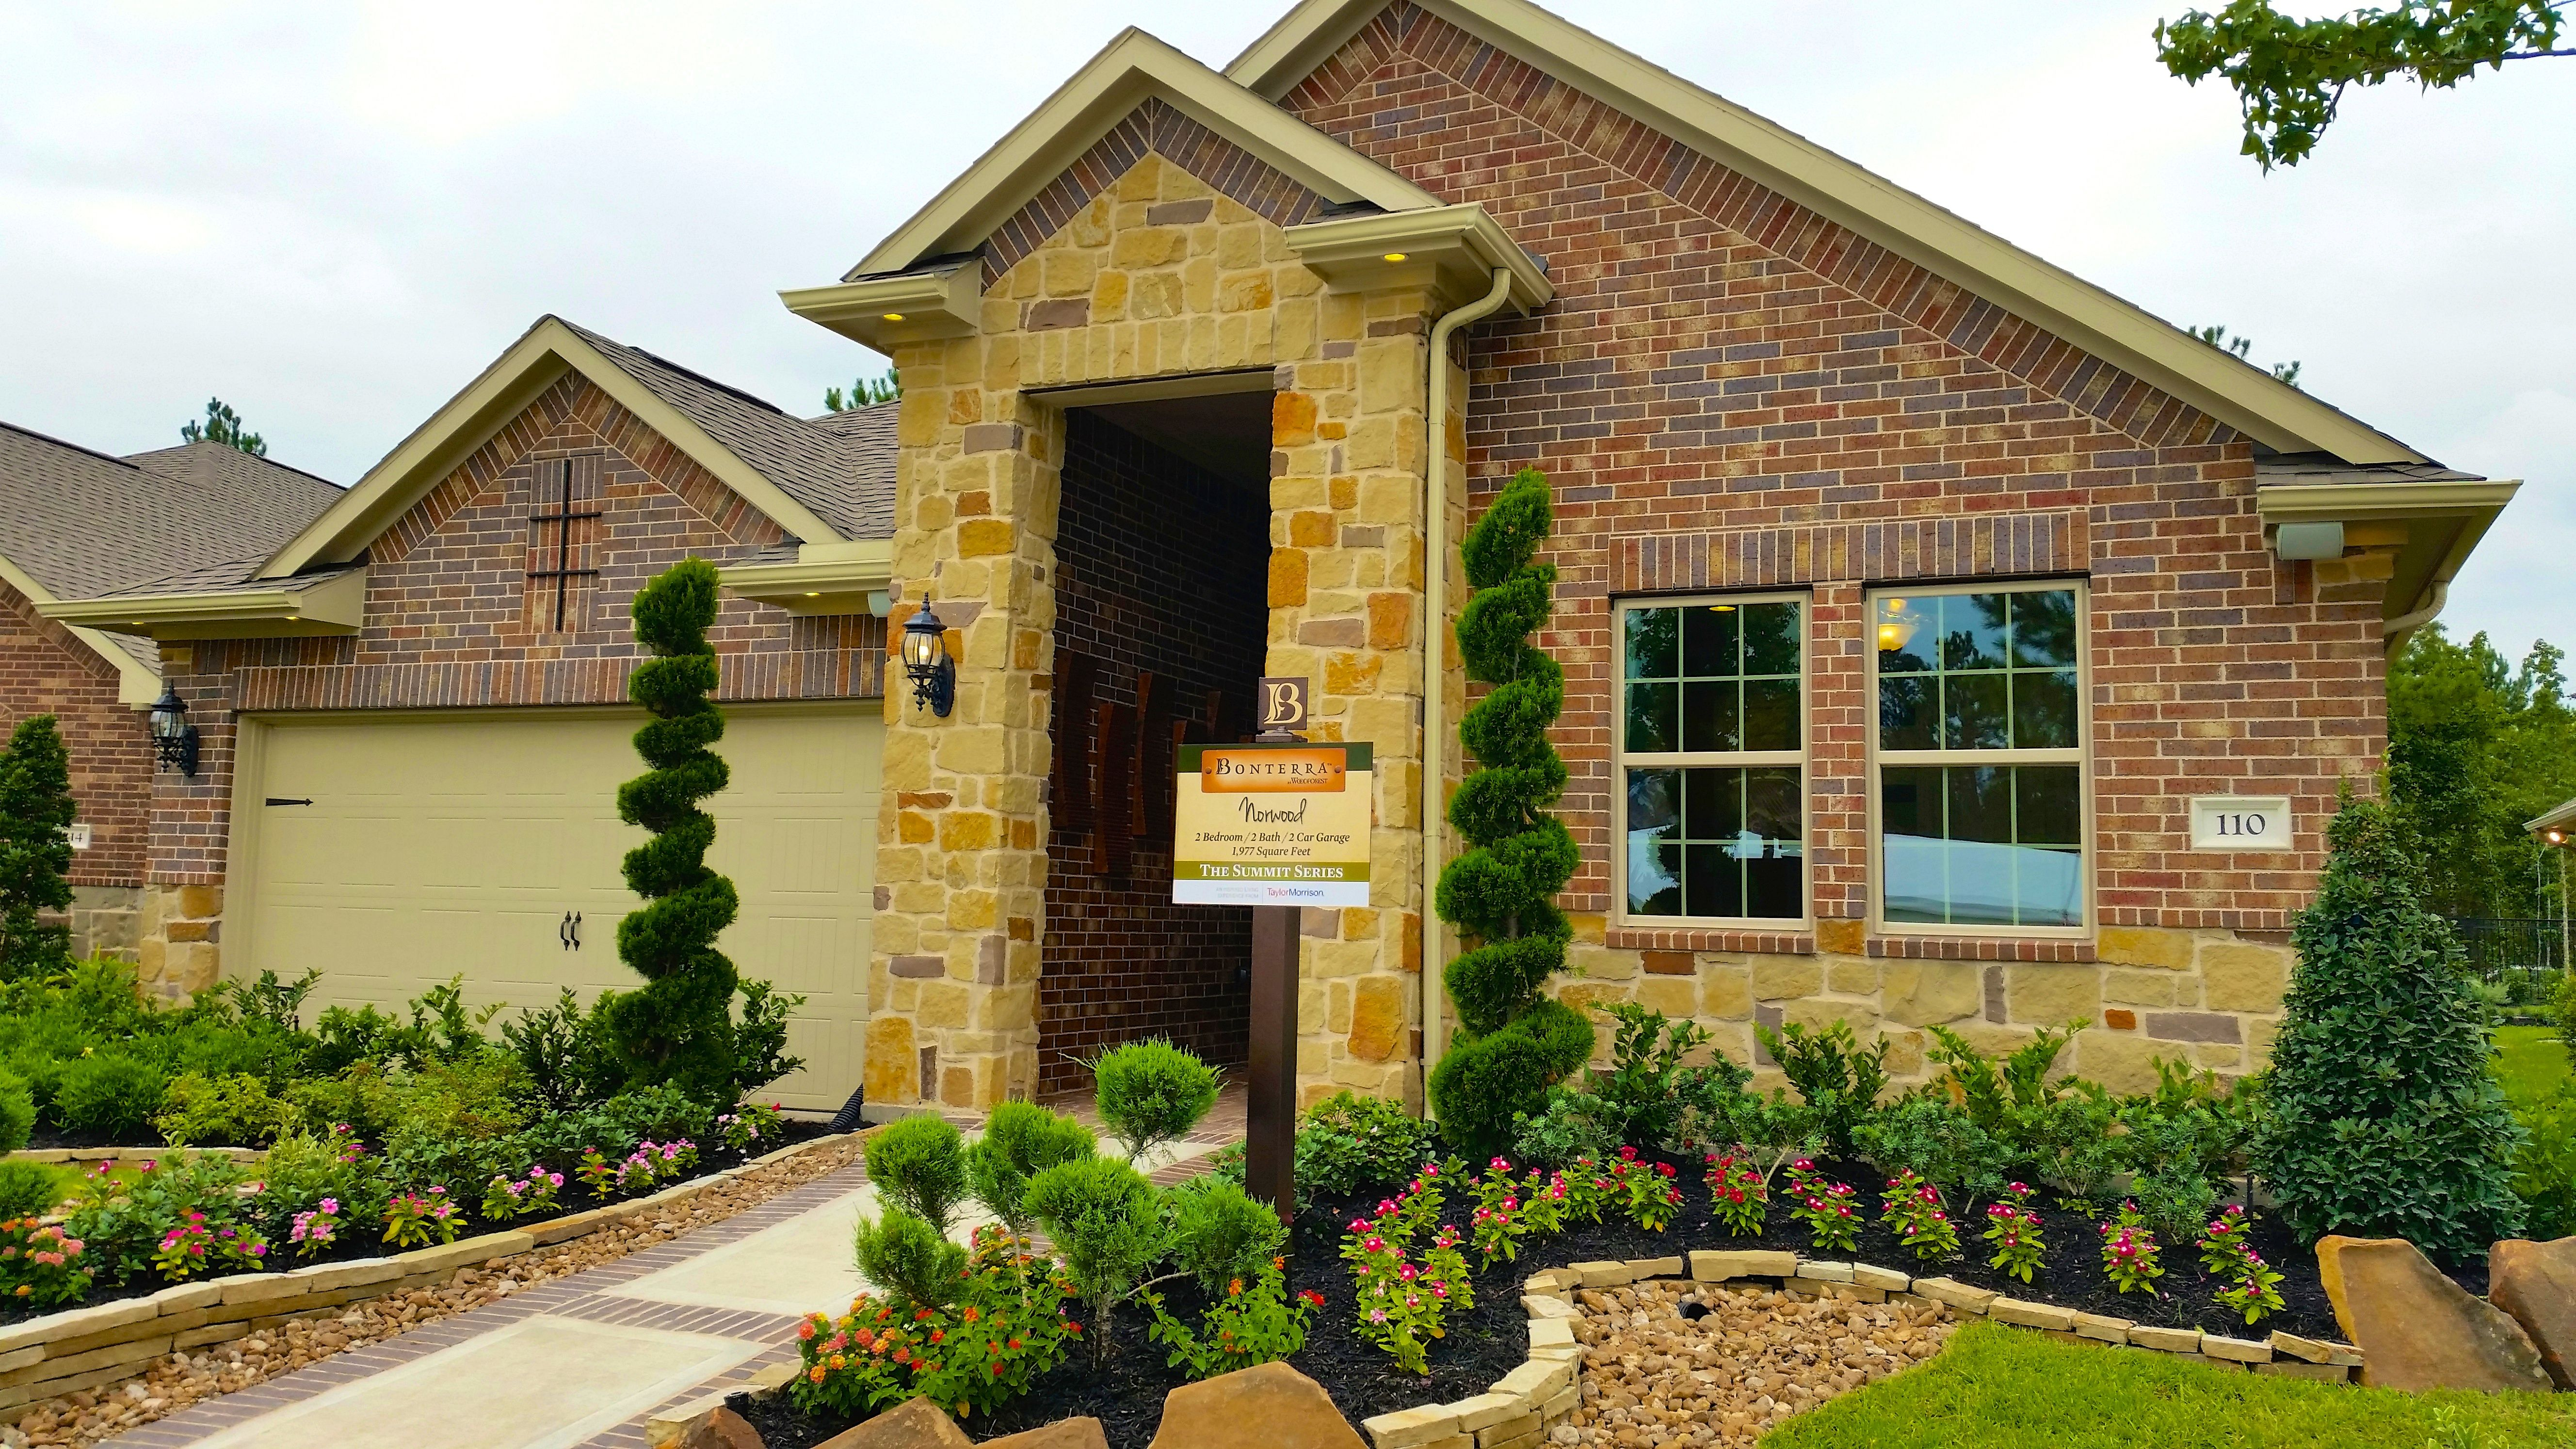 Exterior of the norwood at bonterra offers charming